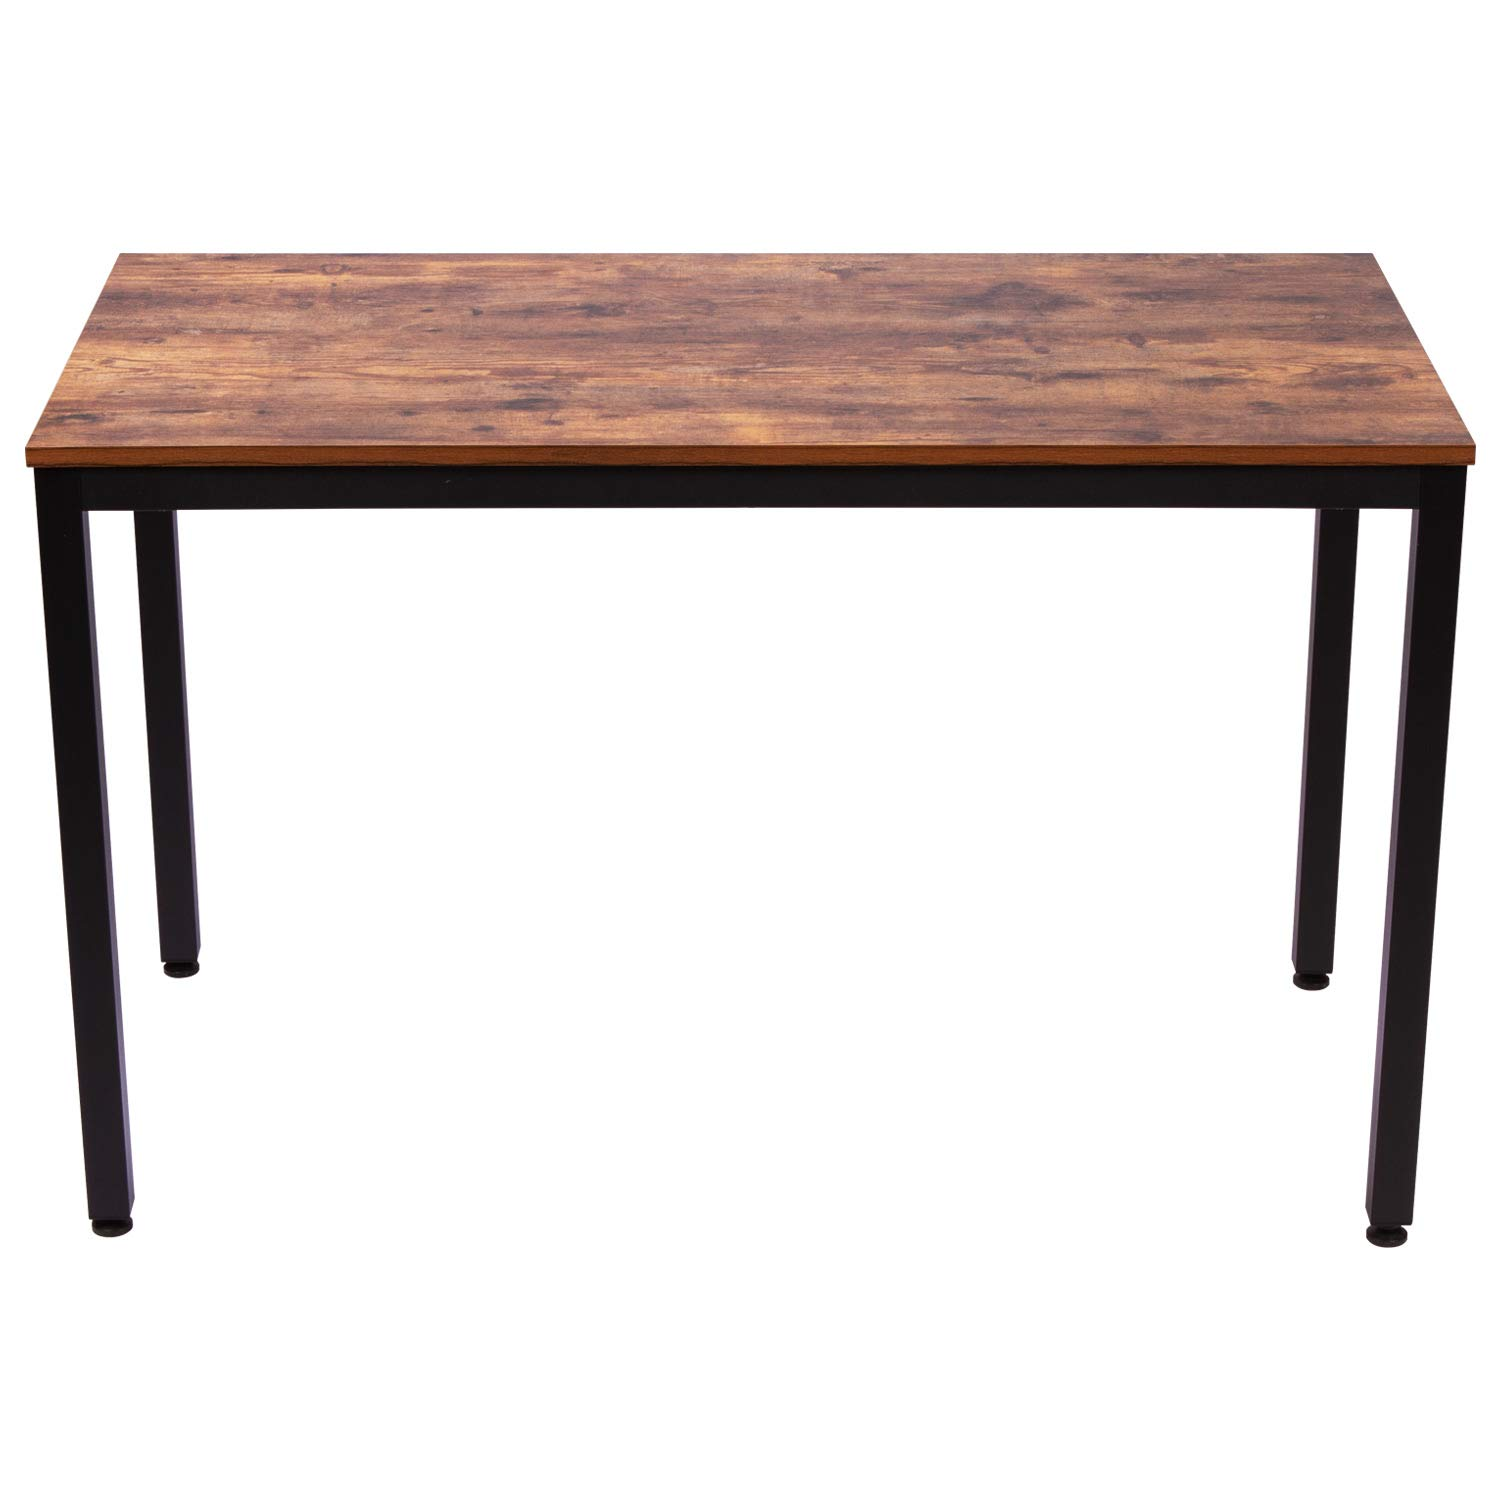 IRONCK Computer Desk, 47'' Office Desk with 0.7'' Thicker Tabletop 1.6'' Sturdy Metal Frame, Simple Study Table, Industrial Style Desk for Home Office, Matt Brown by IRONCK (Image #2)